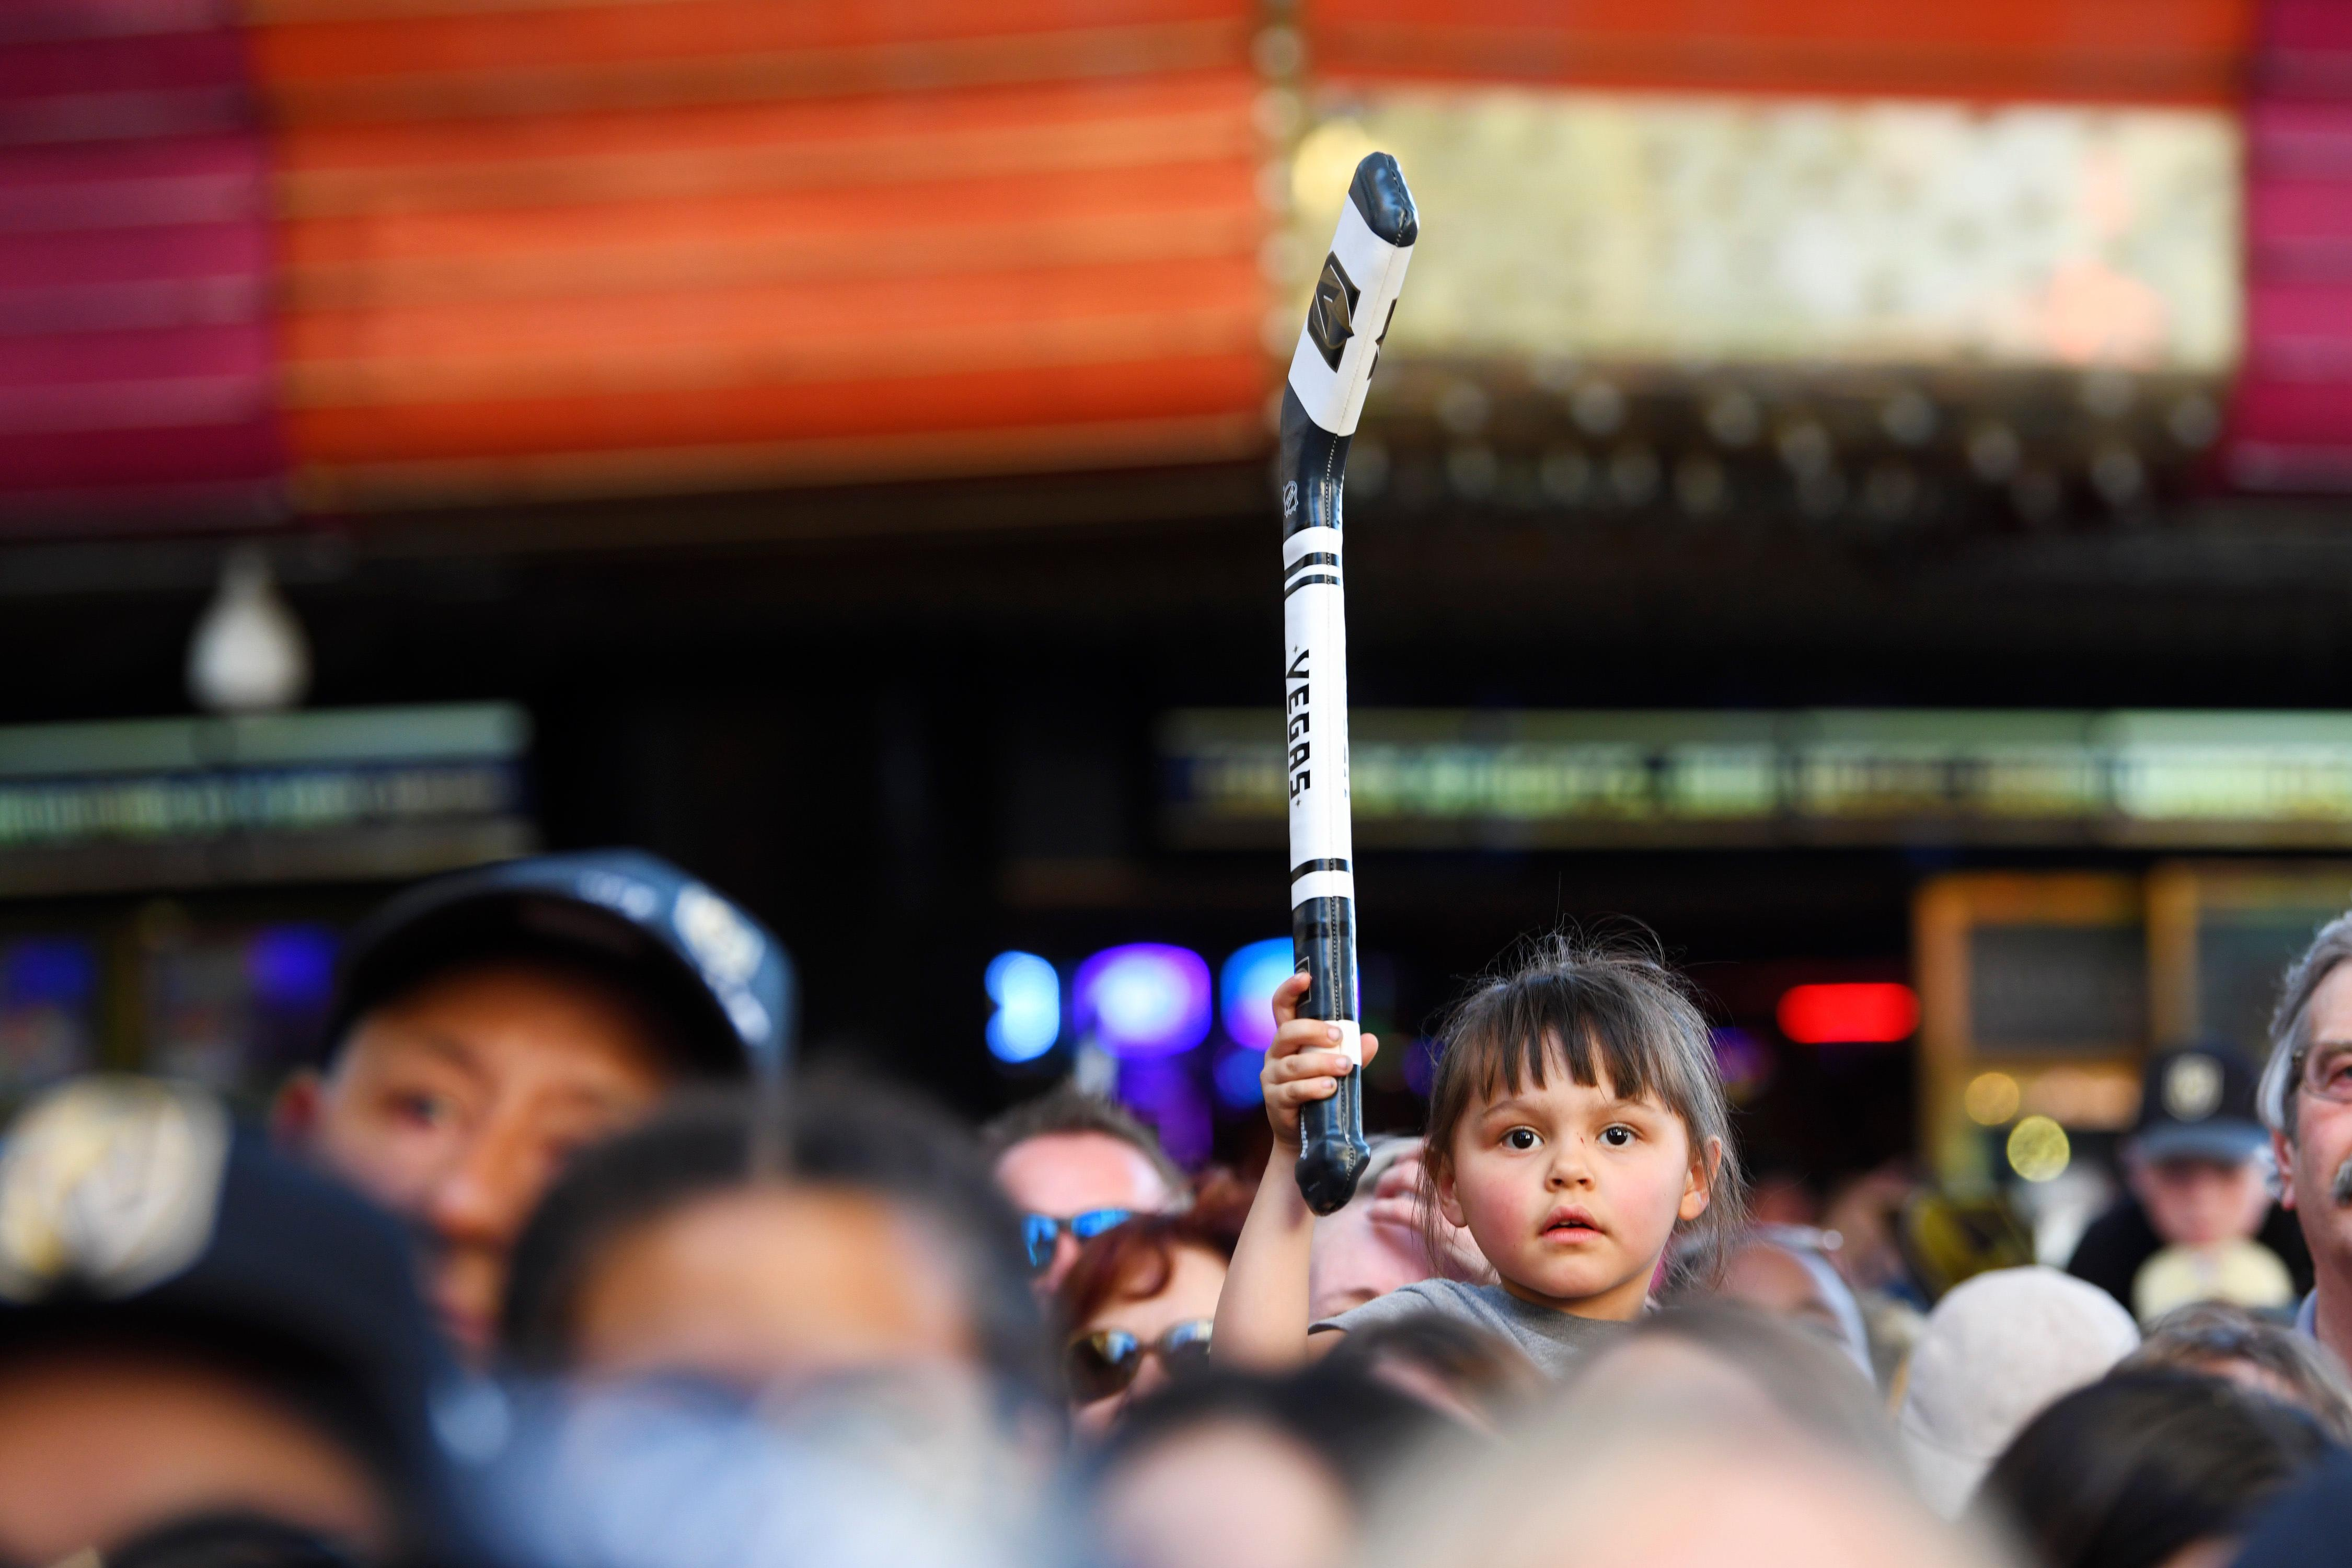 A young fan holds up an inflatable hockey stick during a Vegas Golden Knights Stick Salute to Vegas fan appreciation rally at the Fremont Street Experience Wednesday, June 13, 2018. CREDIT: Sam Morris/Las Vegas News Bureau